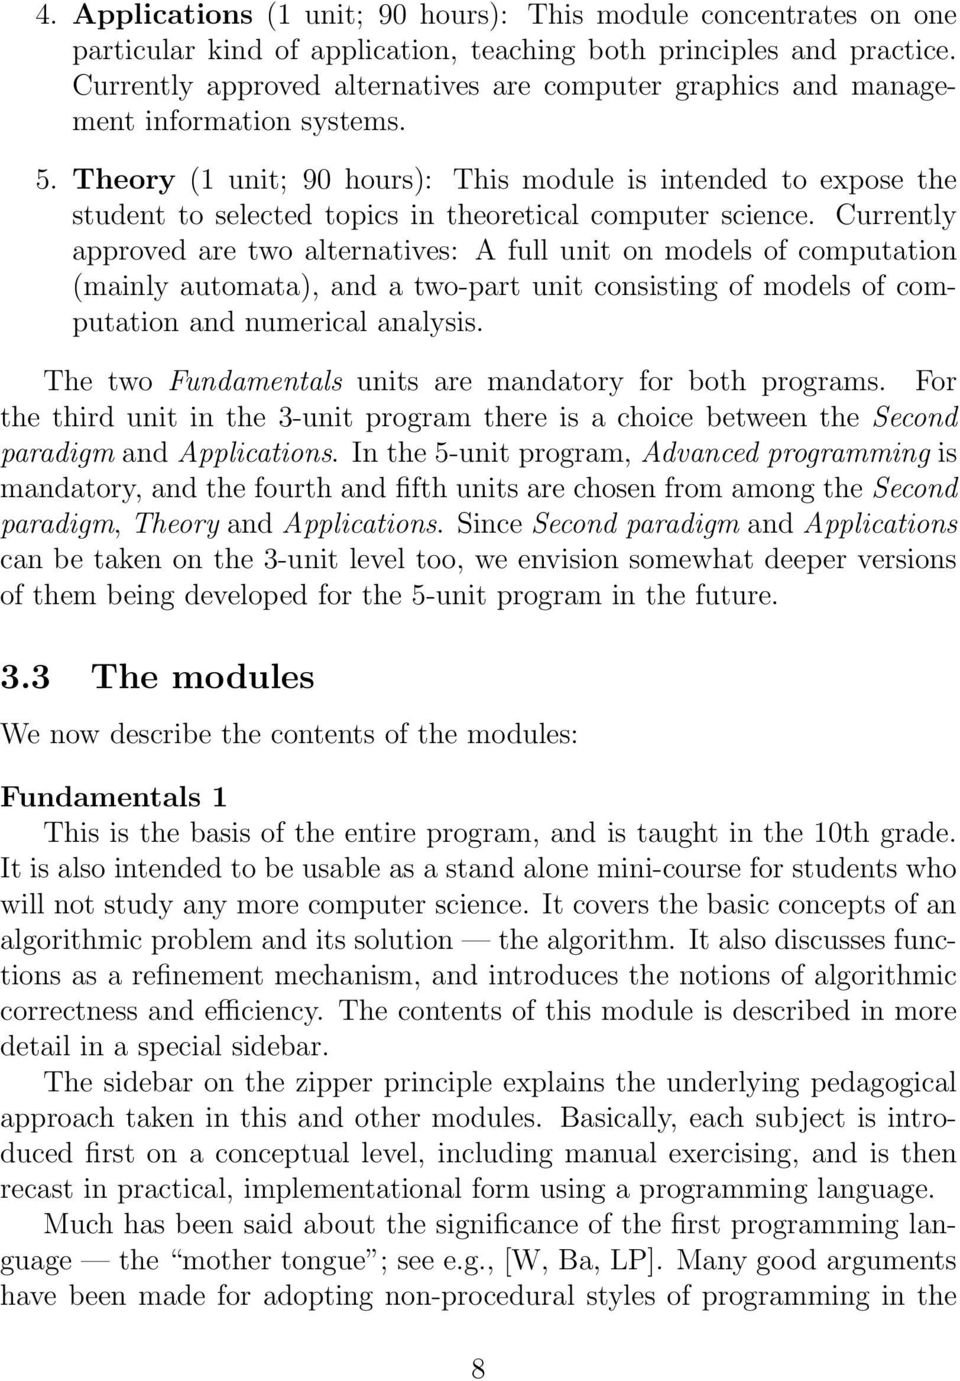 Theory (1 unit; 90 hours): This module is intended to expose the student to selected topics in theoretical computer science.